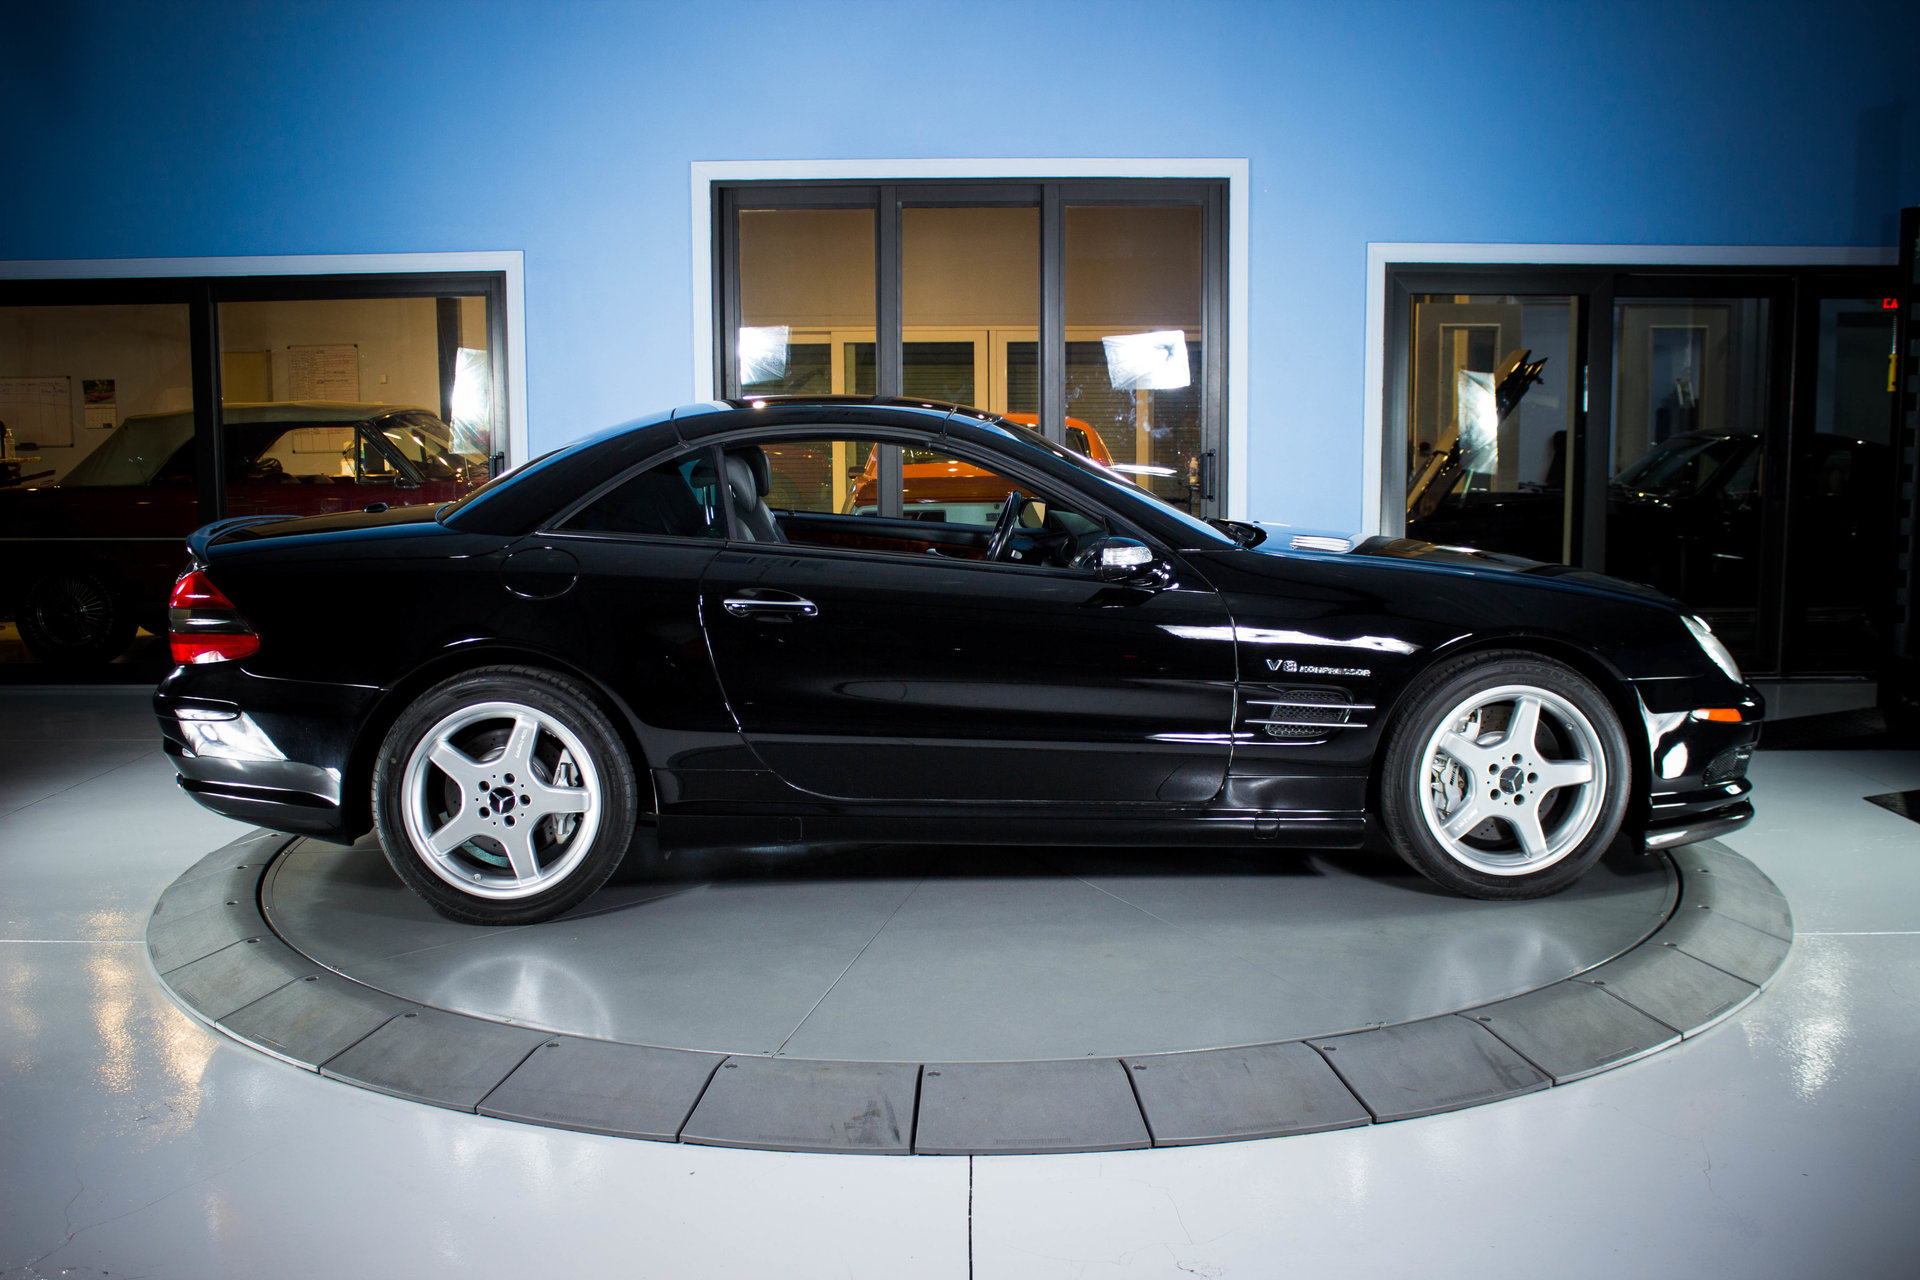 2006 mercedes benz sl 55 classic cars used cars for sale in tampa fl. Black Bedroom Furniture Sets. Home Design Ideas